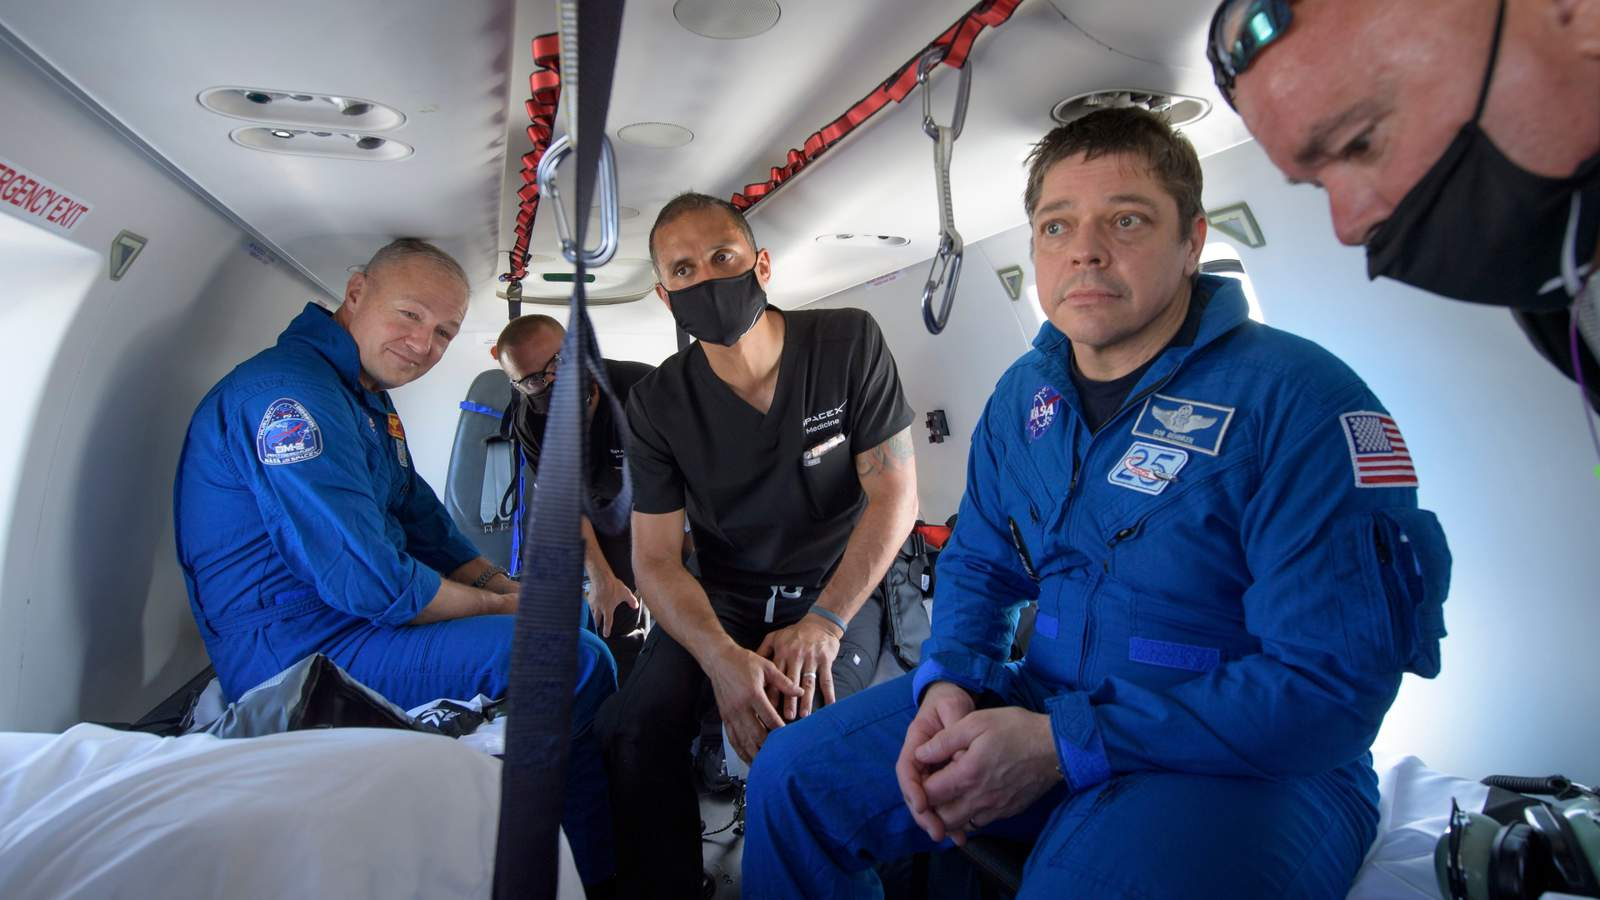 'It came alive:' NASA astronauts explain dealing with splashdown in SpaceX Dragon